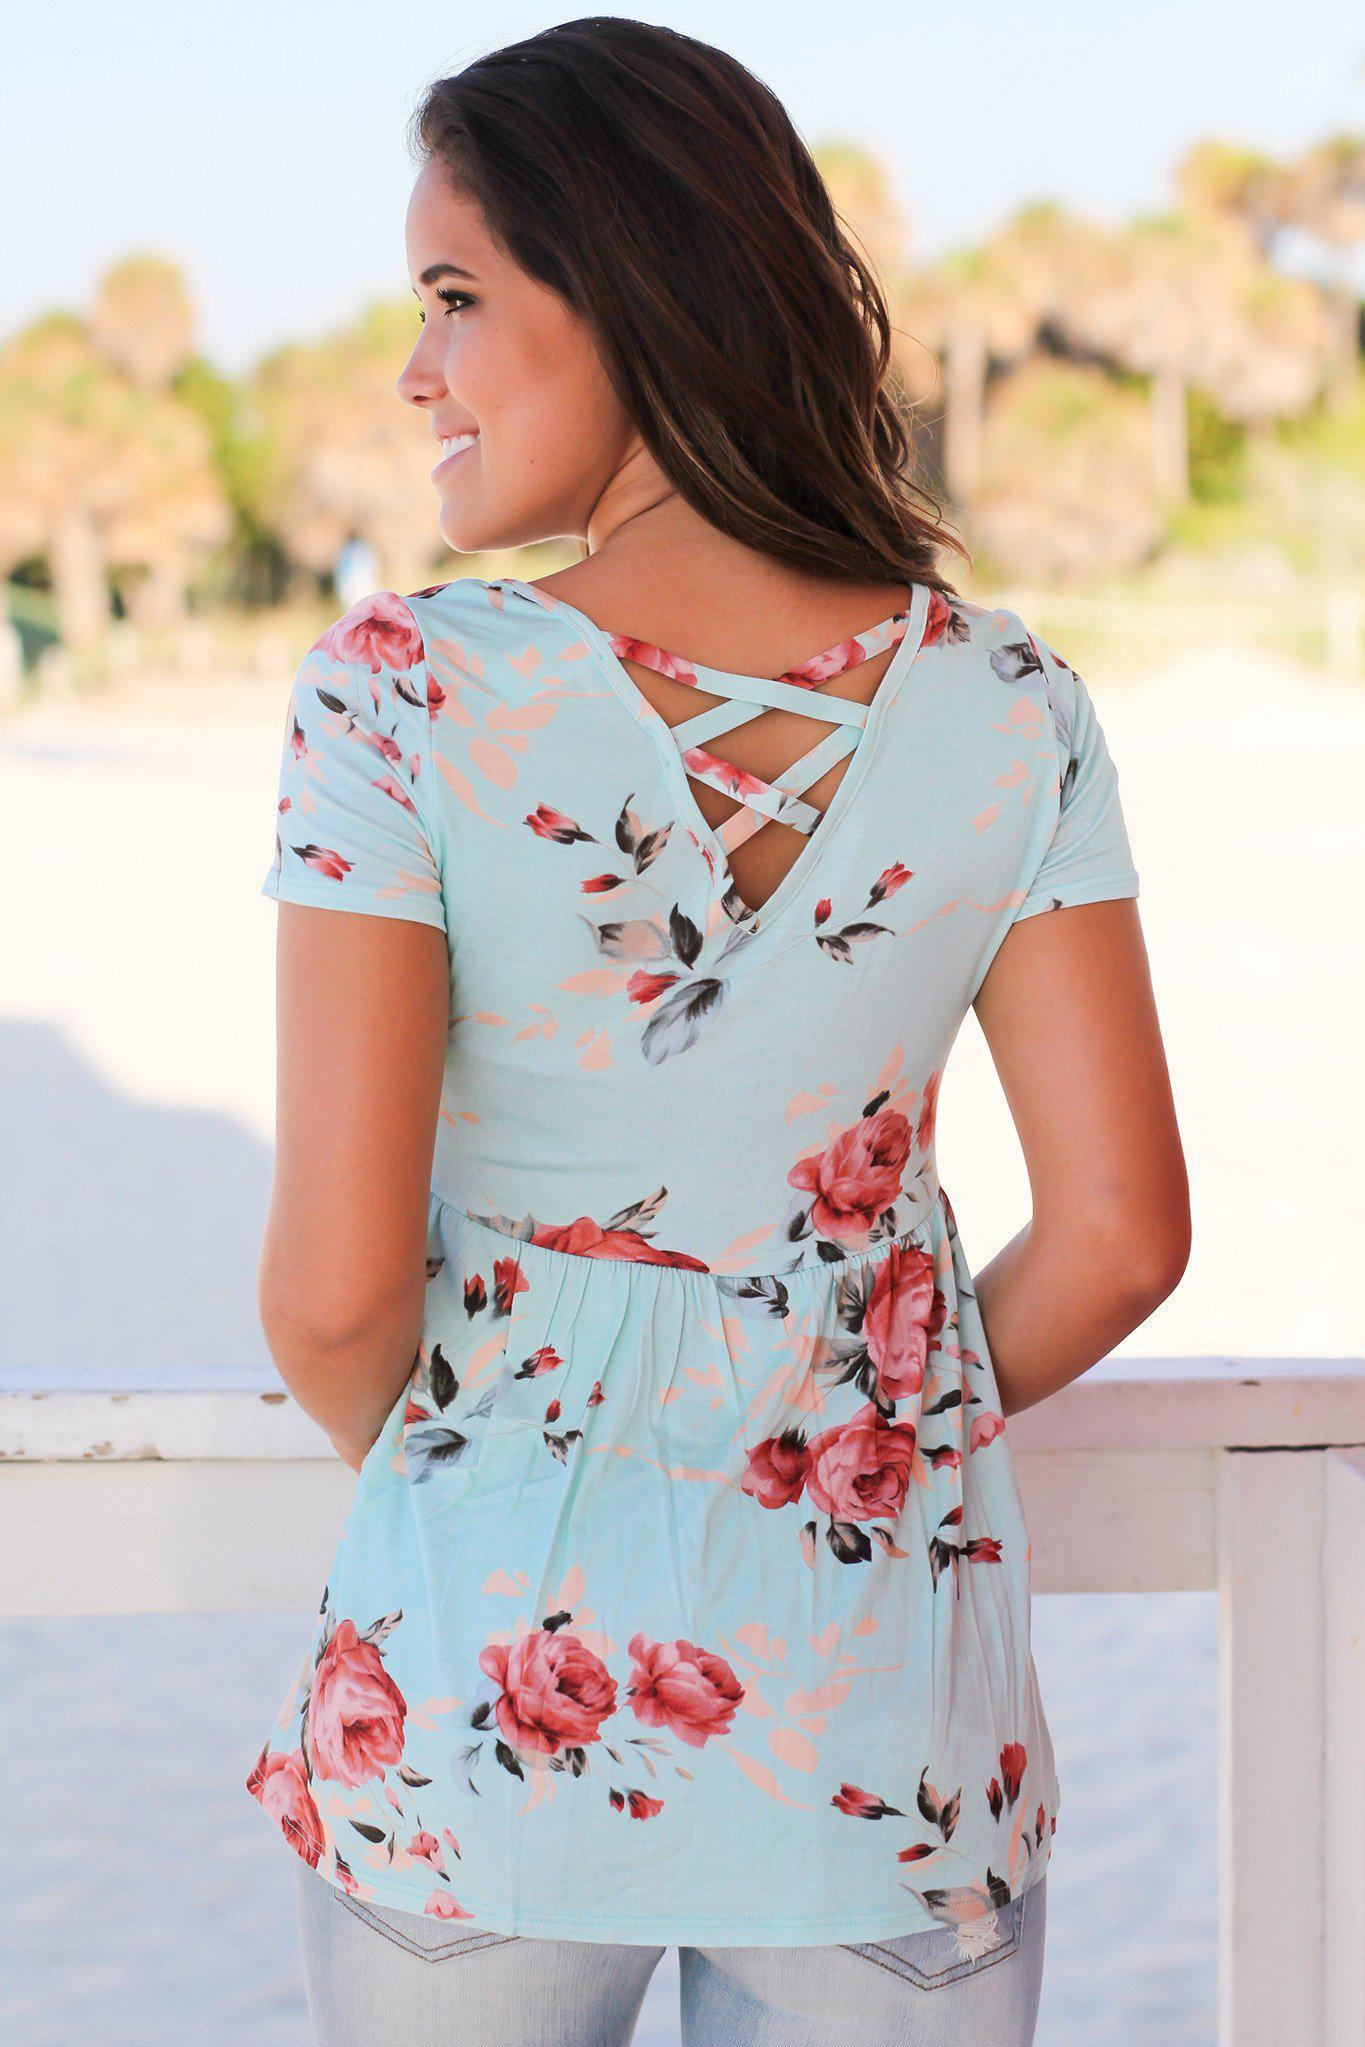 Mint Floral Short Sleeve Top with Criss Cross Back